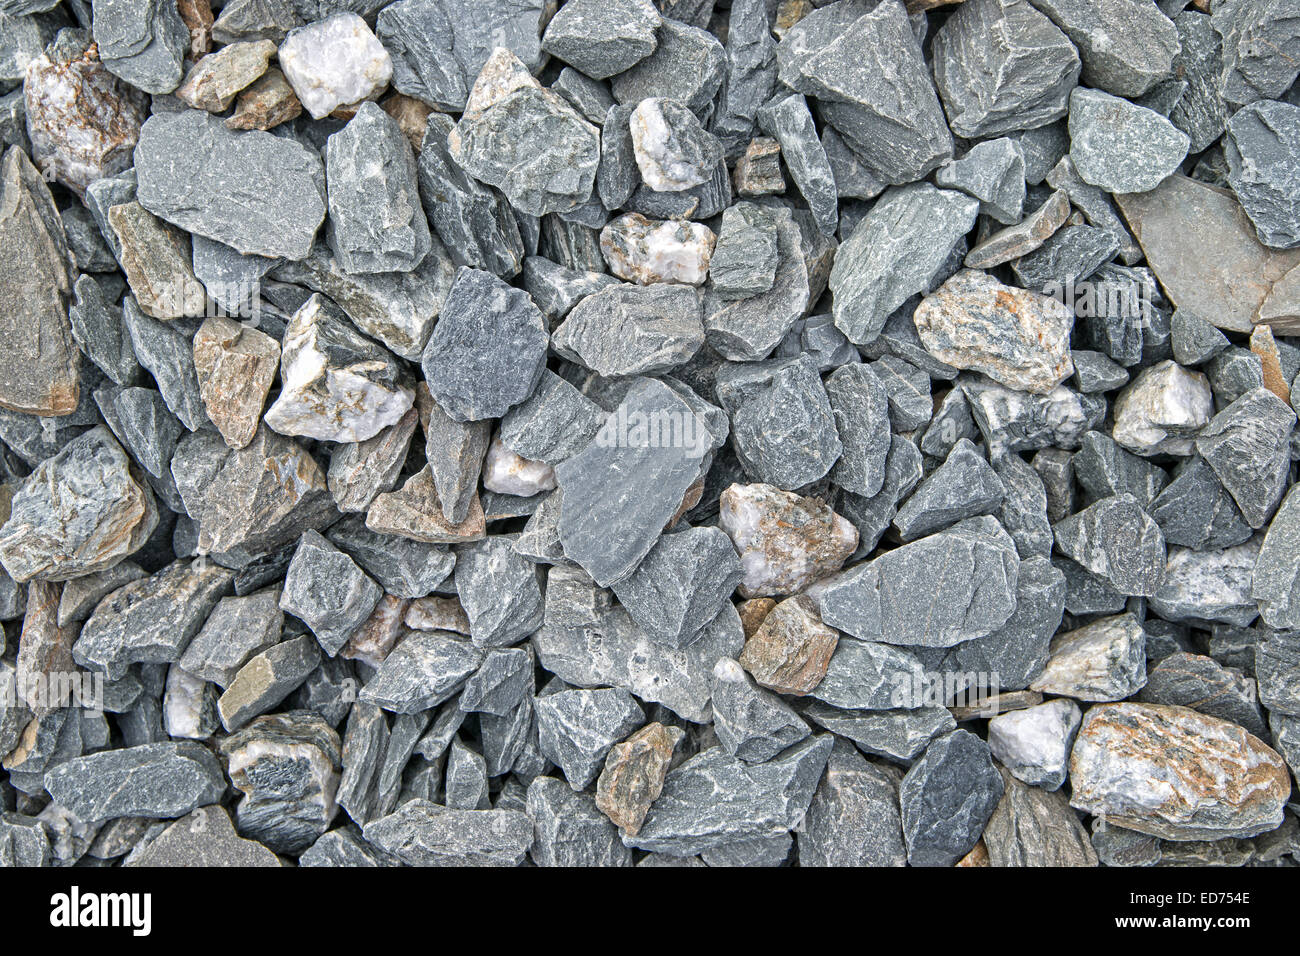 A very close view of stone ballast used between railroad ties Stock